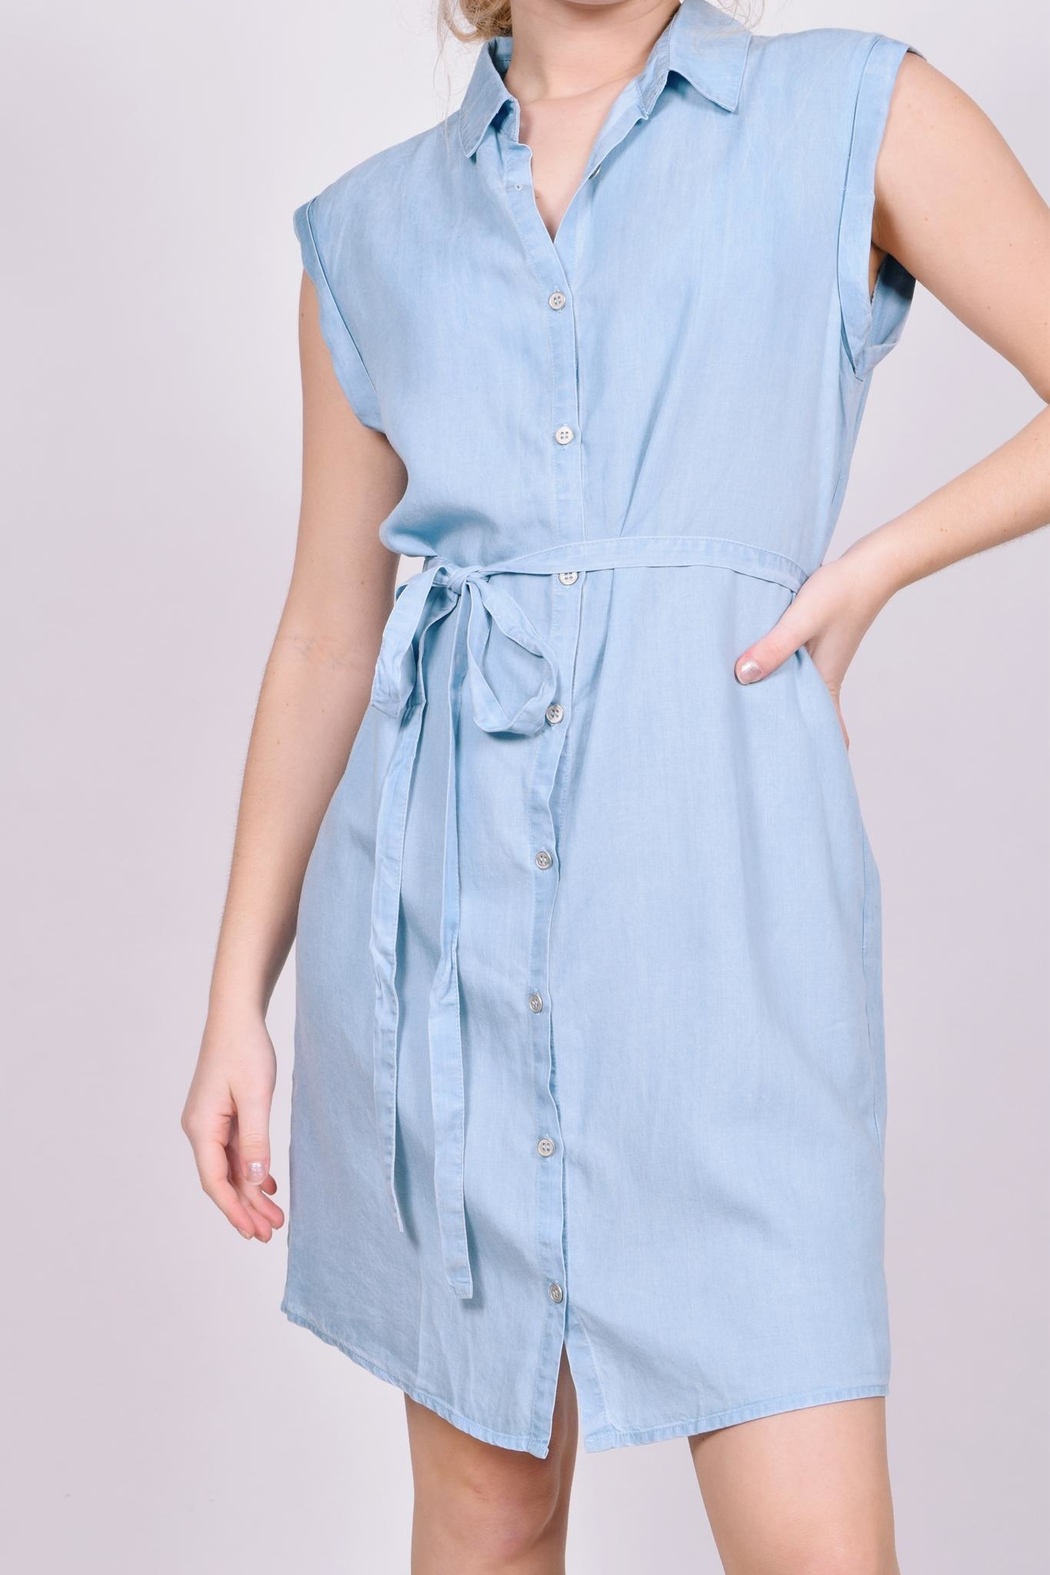 Unbranded Denim Button-Down Dress - Side Cropped Image